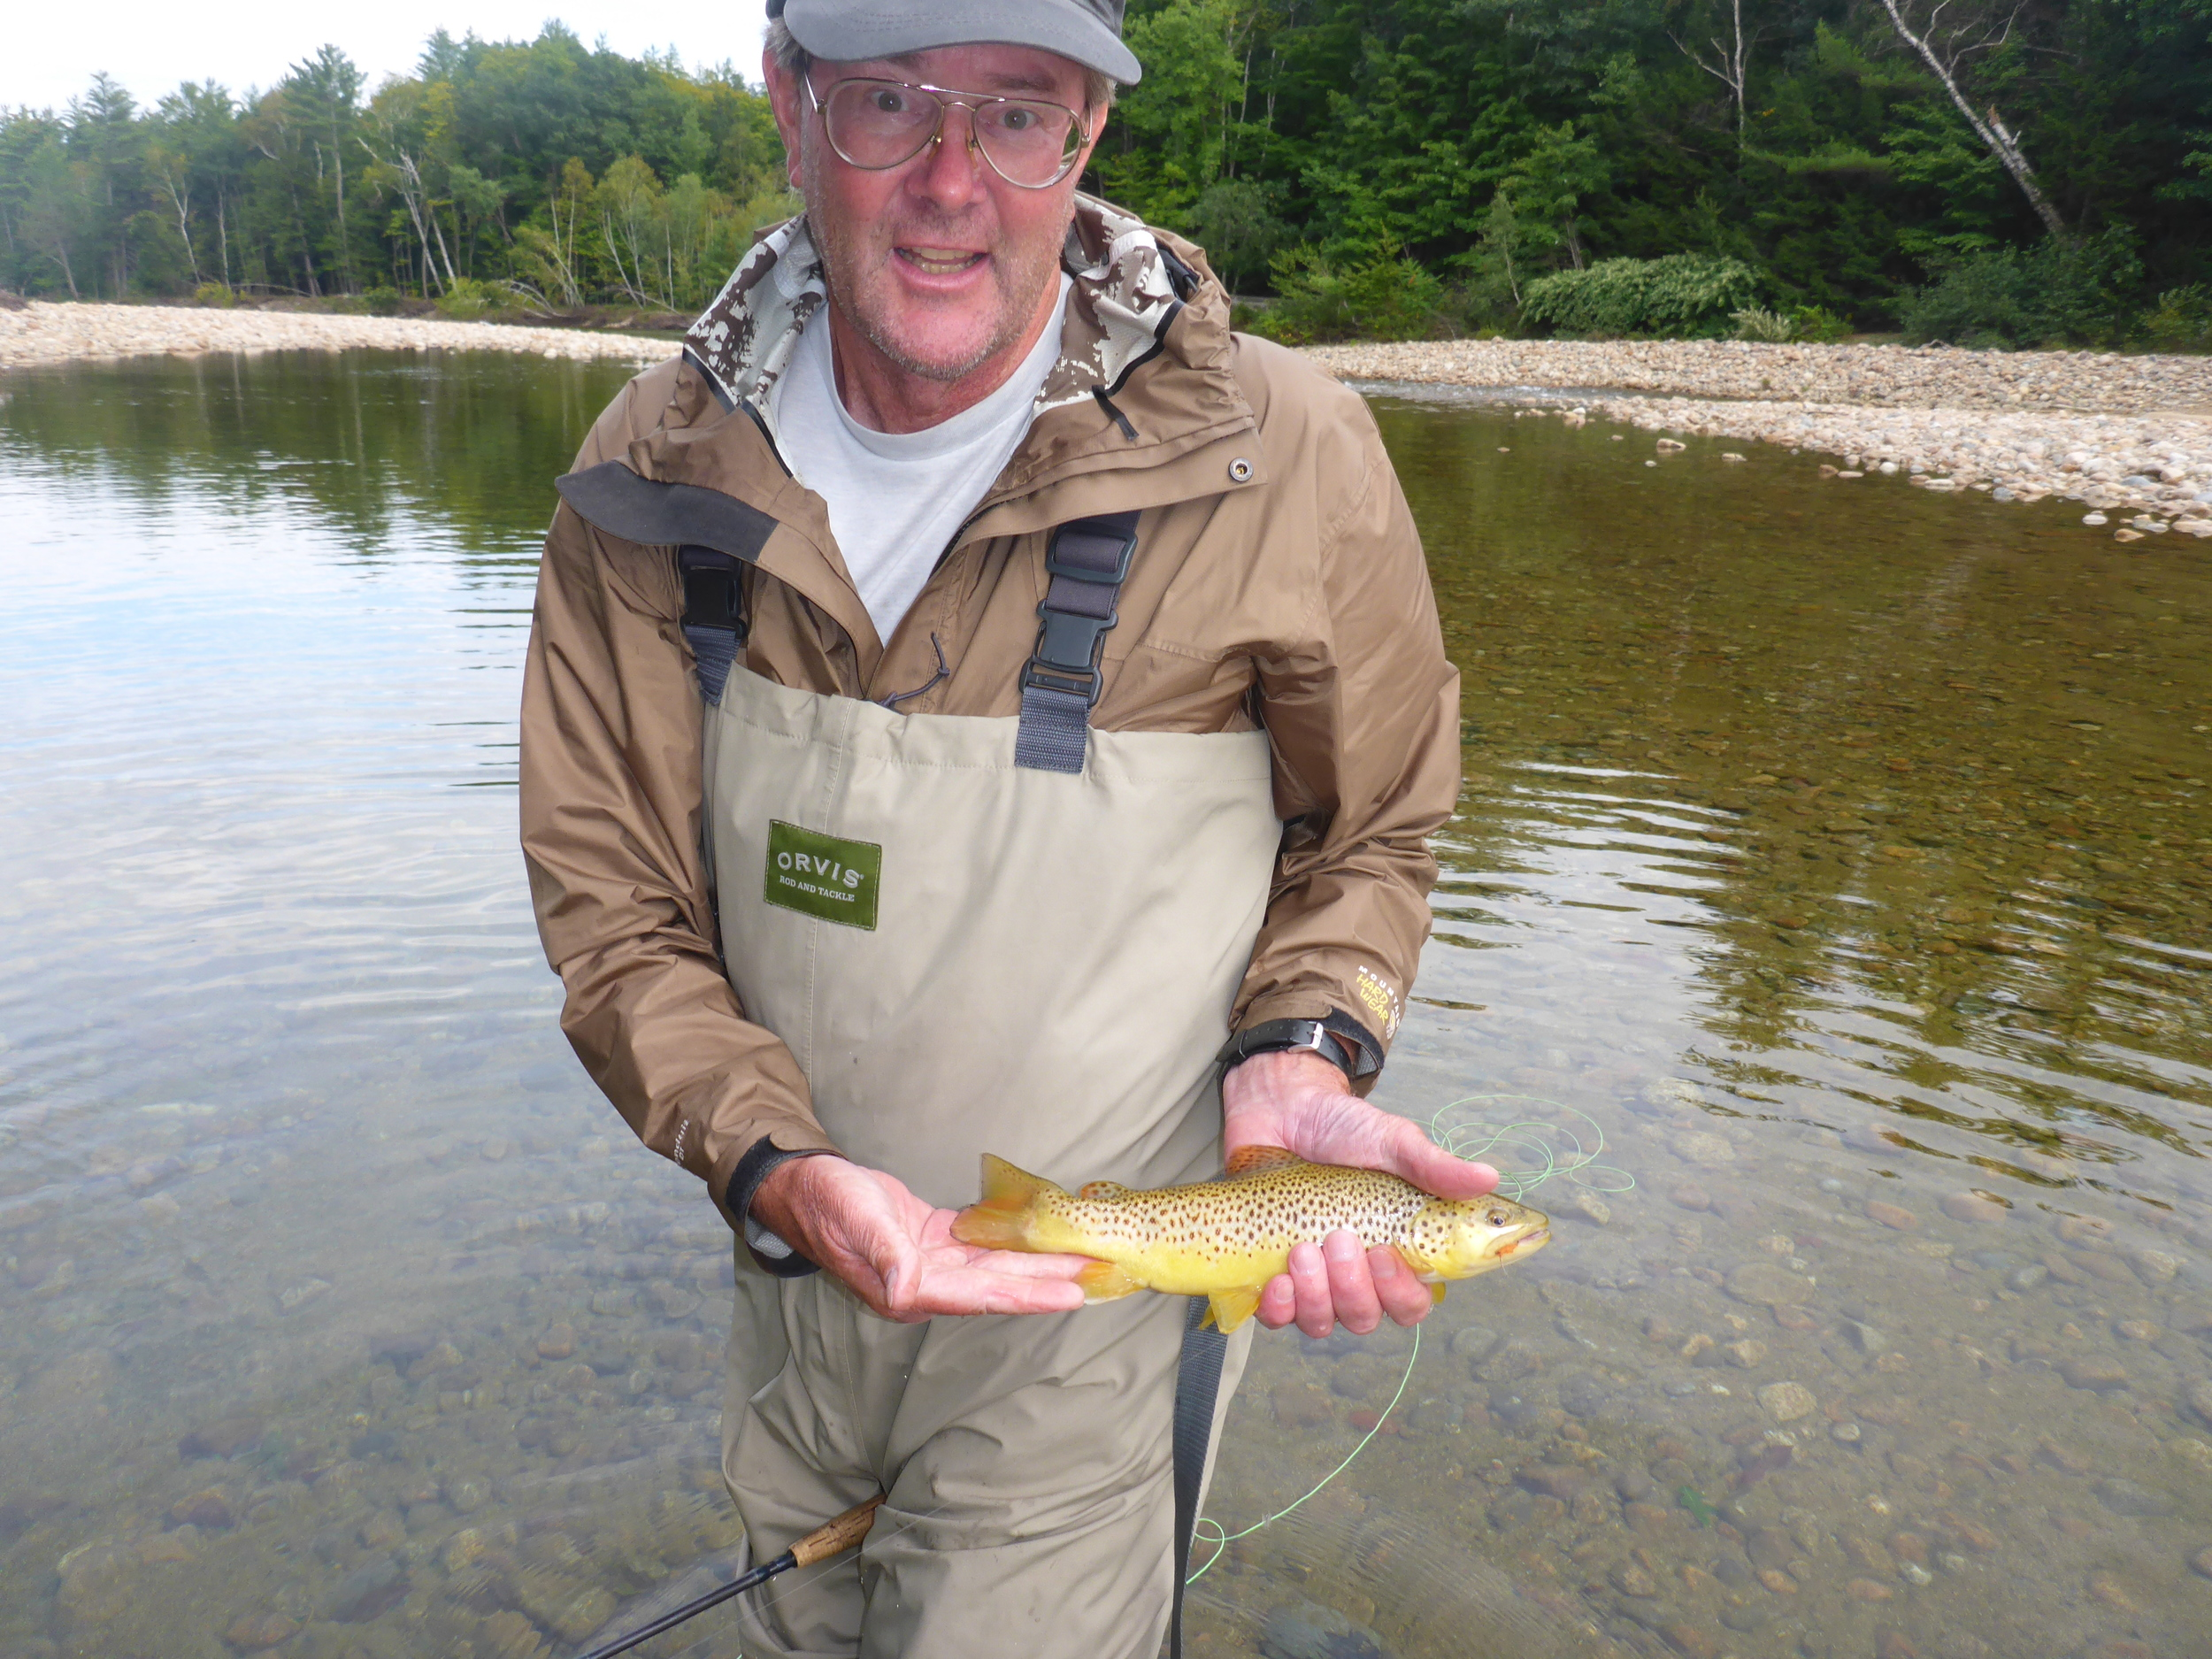 Dale with a golden Saco Brown.